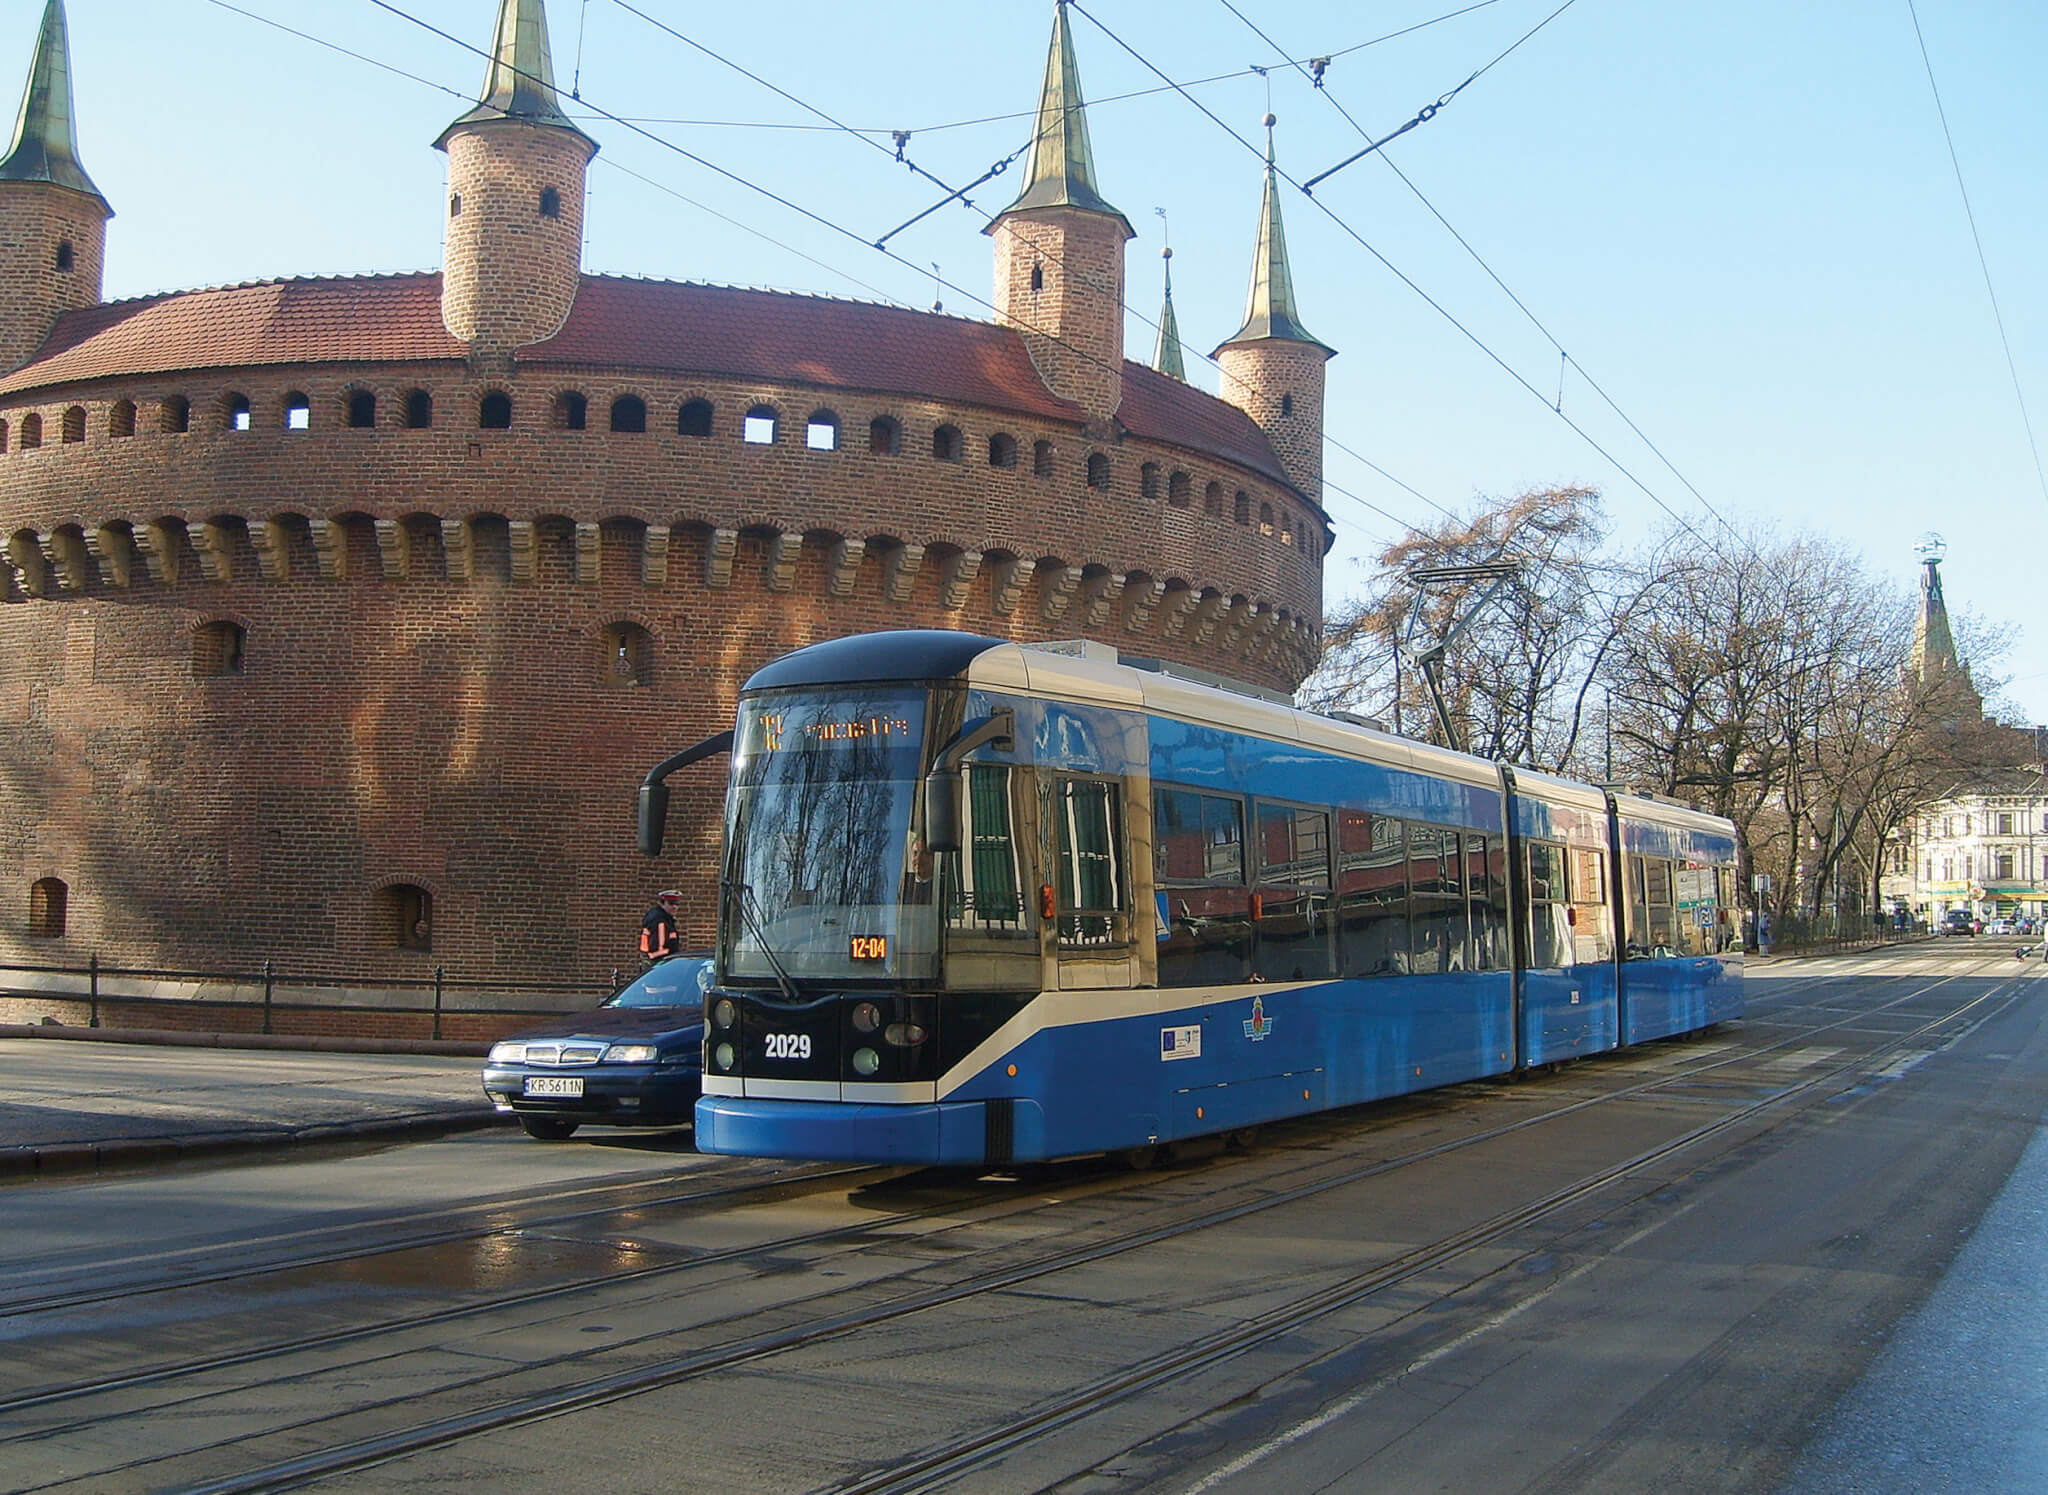 Bombardier Deliver Flexity Classic LRV to Krakow